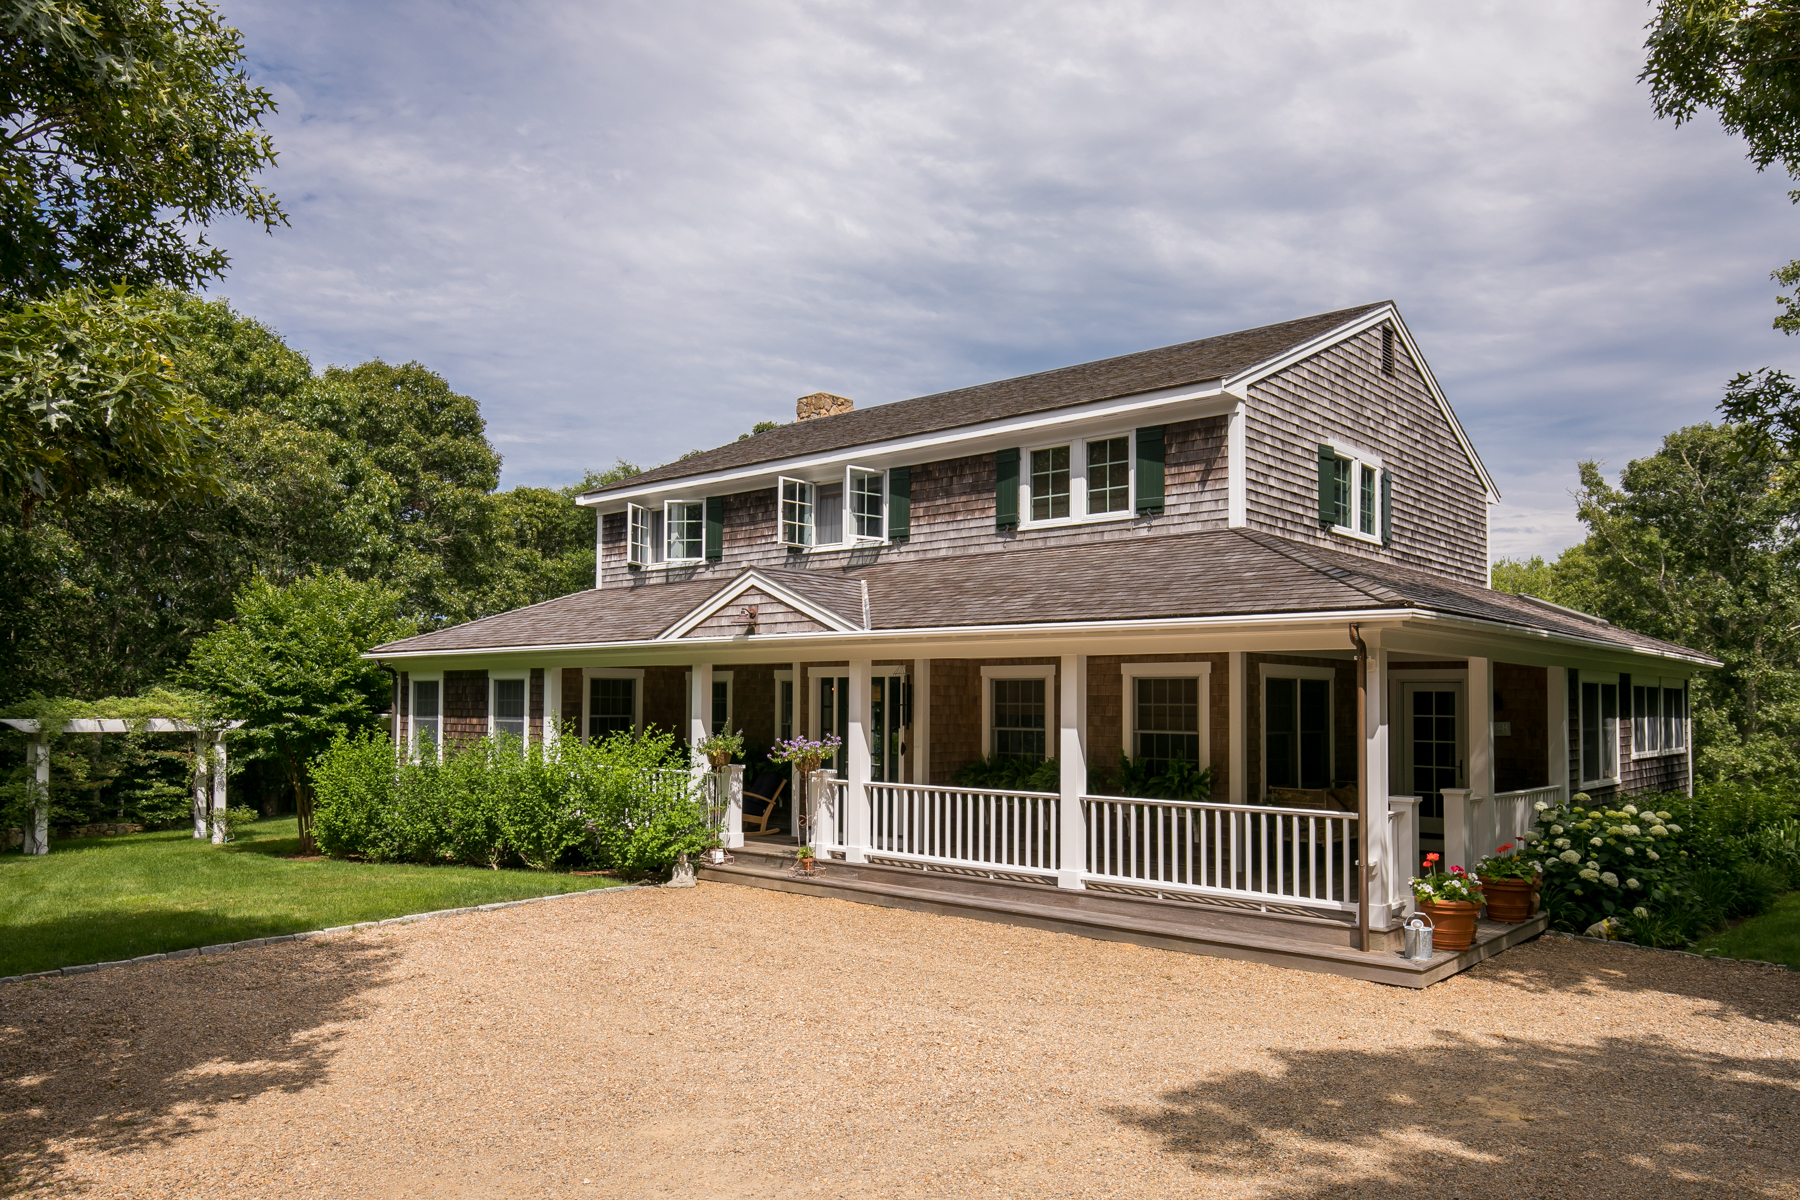 Casa Unifamiliar por un Venta en Comtemporary Farmhouse in Chilmark 15 Valley Lane Chilmark, Massachusetts 02535 Estados Unidos